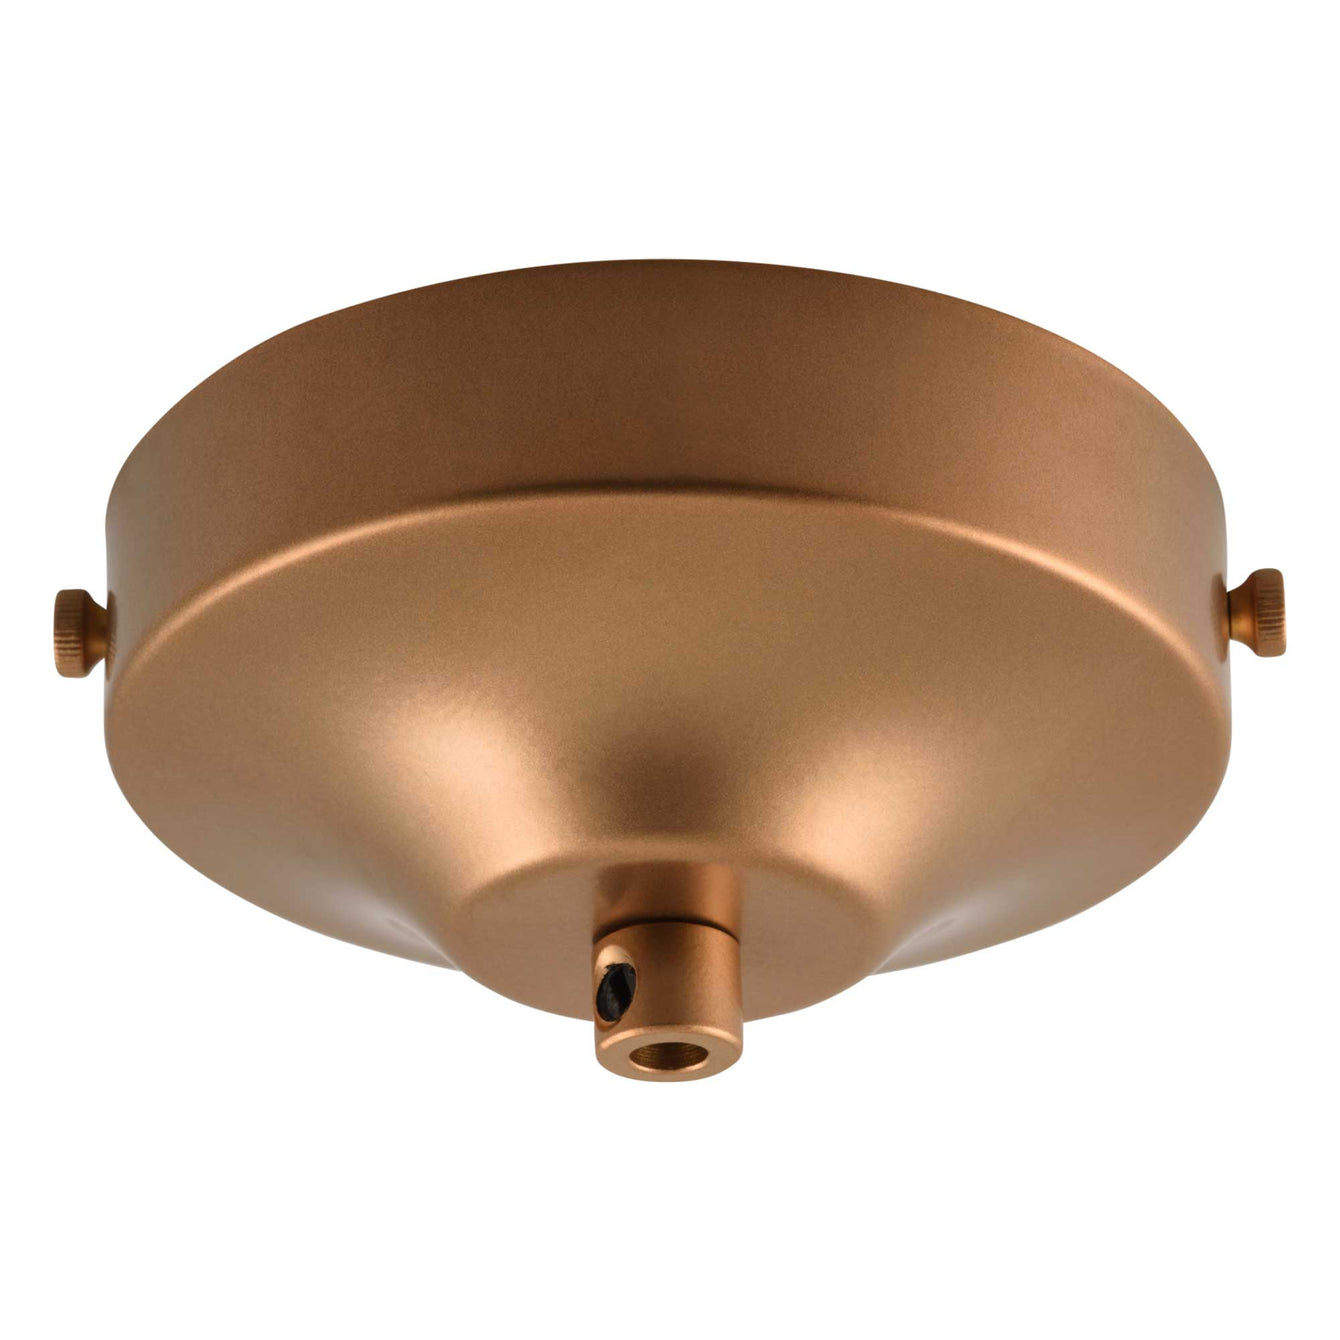 ElekTek 100mm Diameter Convex Ceiling Rose with Strap Bracket and Cord Grip Metallic Finishes Powder Coated Colours - Buy It Better Brilliant White